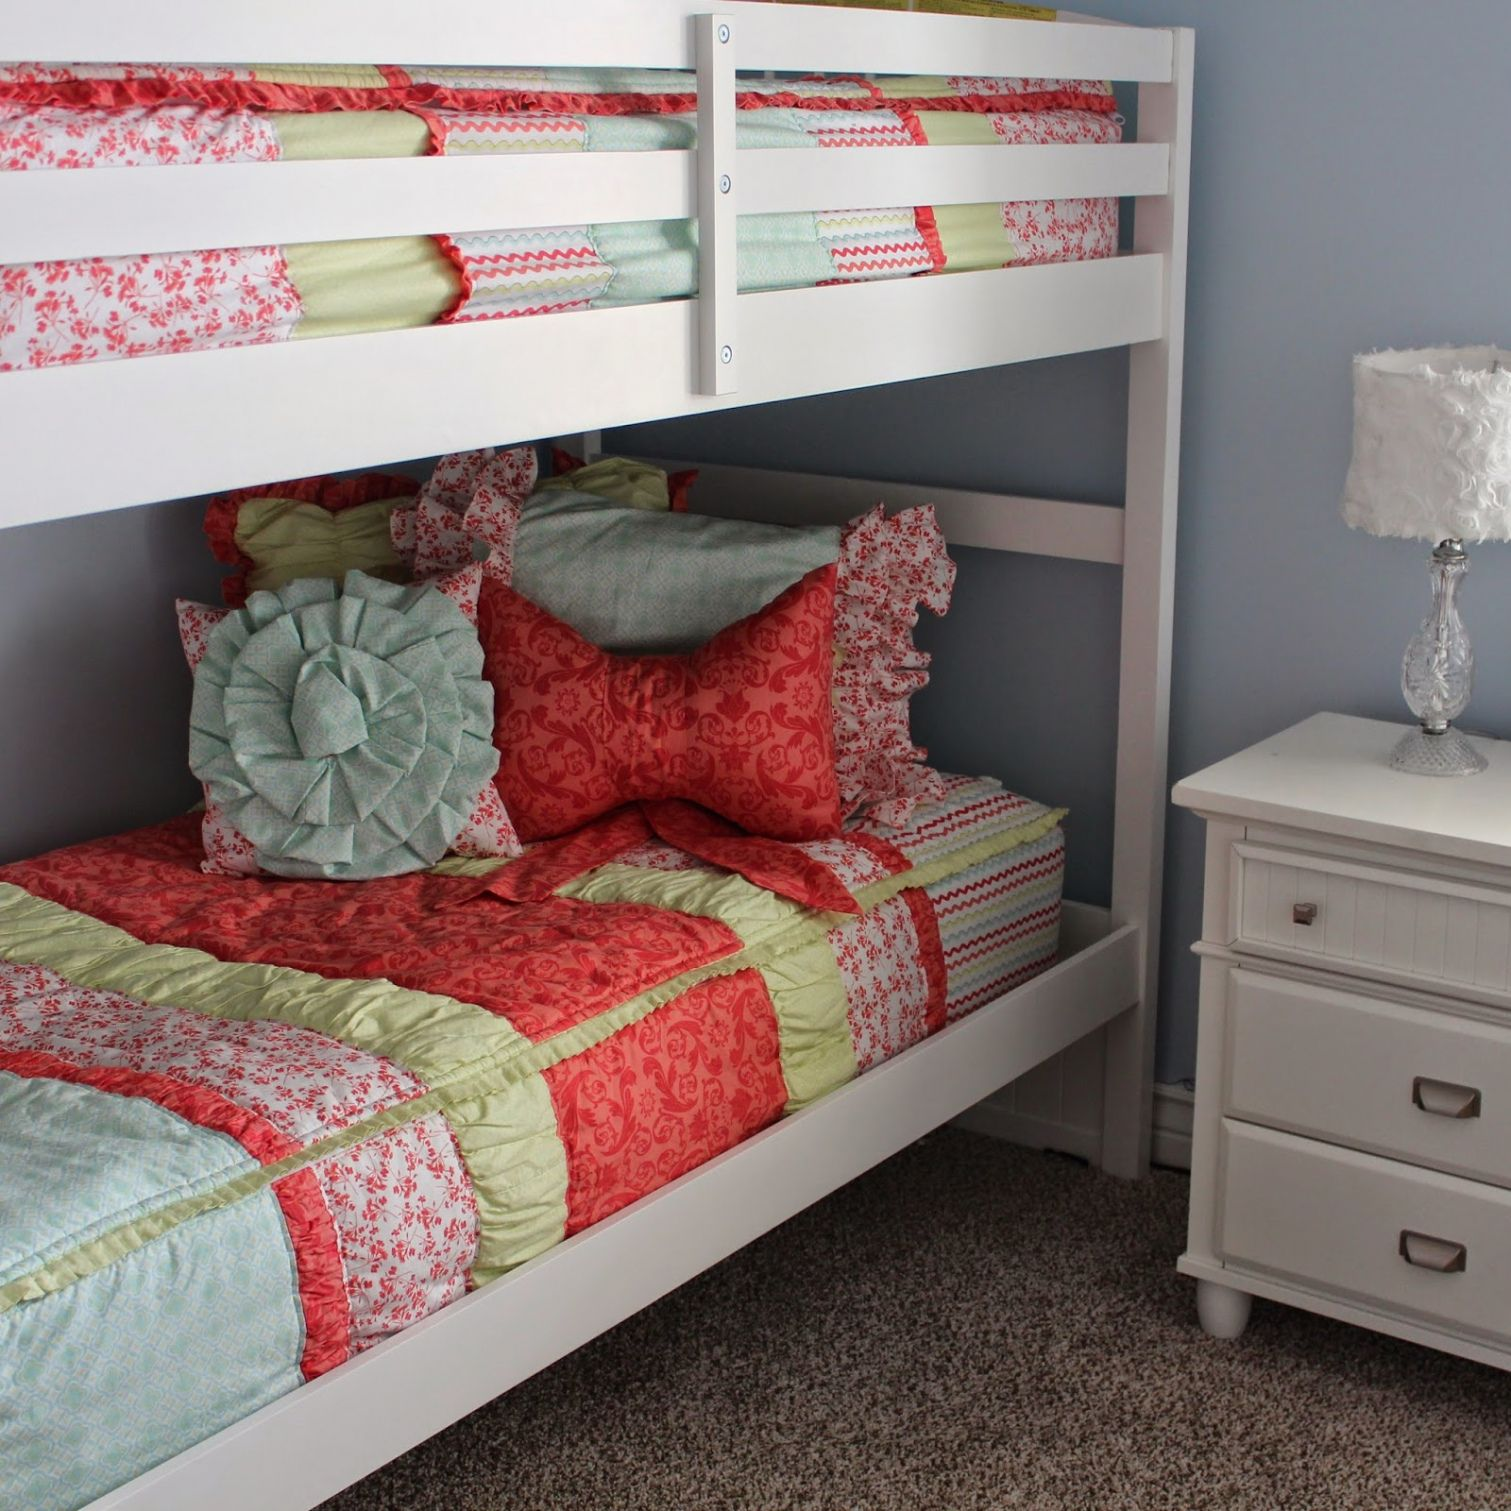 Twin Bunk Bed Sheet Sets   Popular Interior Paint Colors Check More At  Http:/